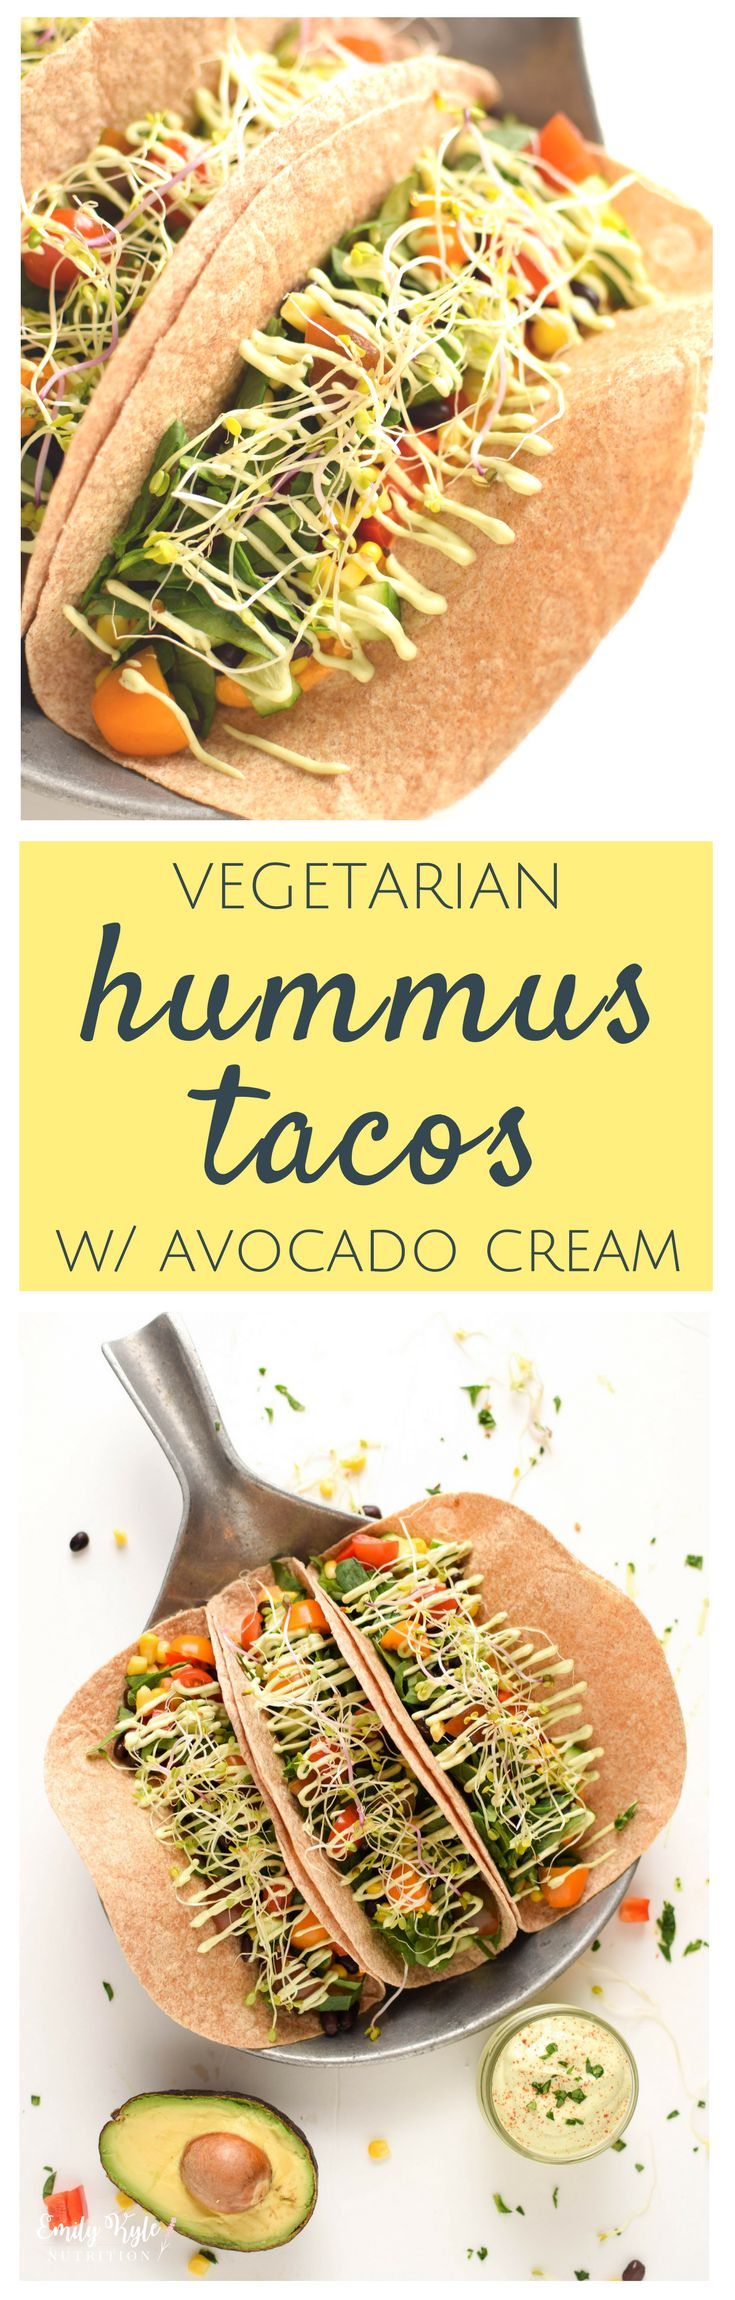 These Vegetarian Hummus Tacos with Avocado Cream are a delicious. vegetarian meal that even the most carnivorous diner won't turn their nose up at! Packed with veggies and plant-based goodness, the whole family will love these delicious and nutritious tacos! via @EmKyleNutrition